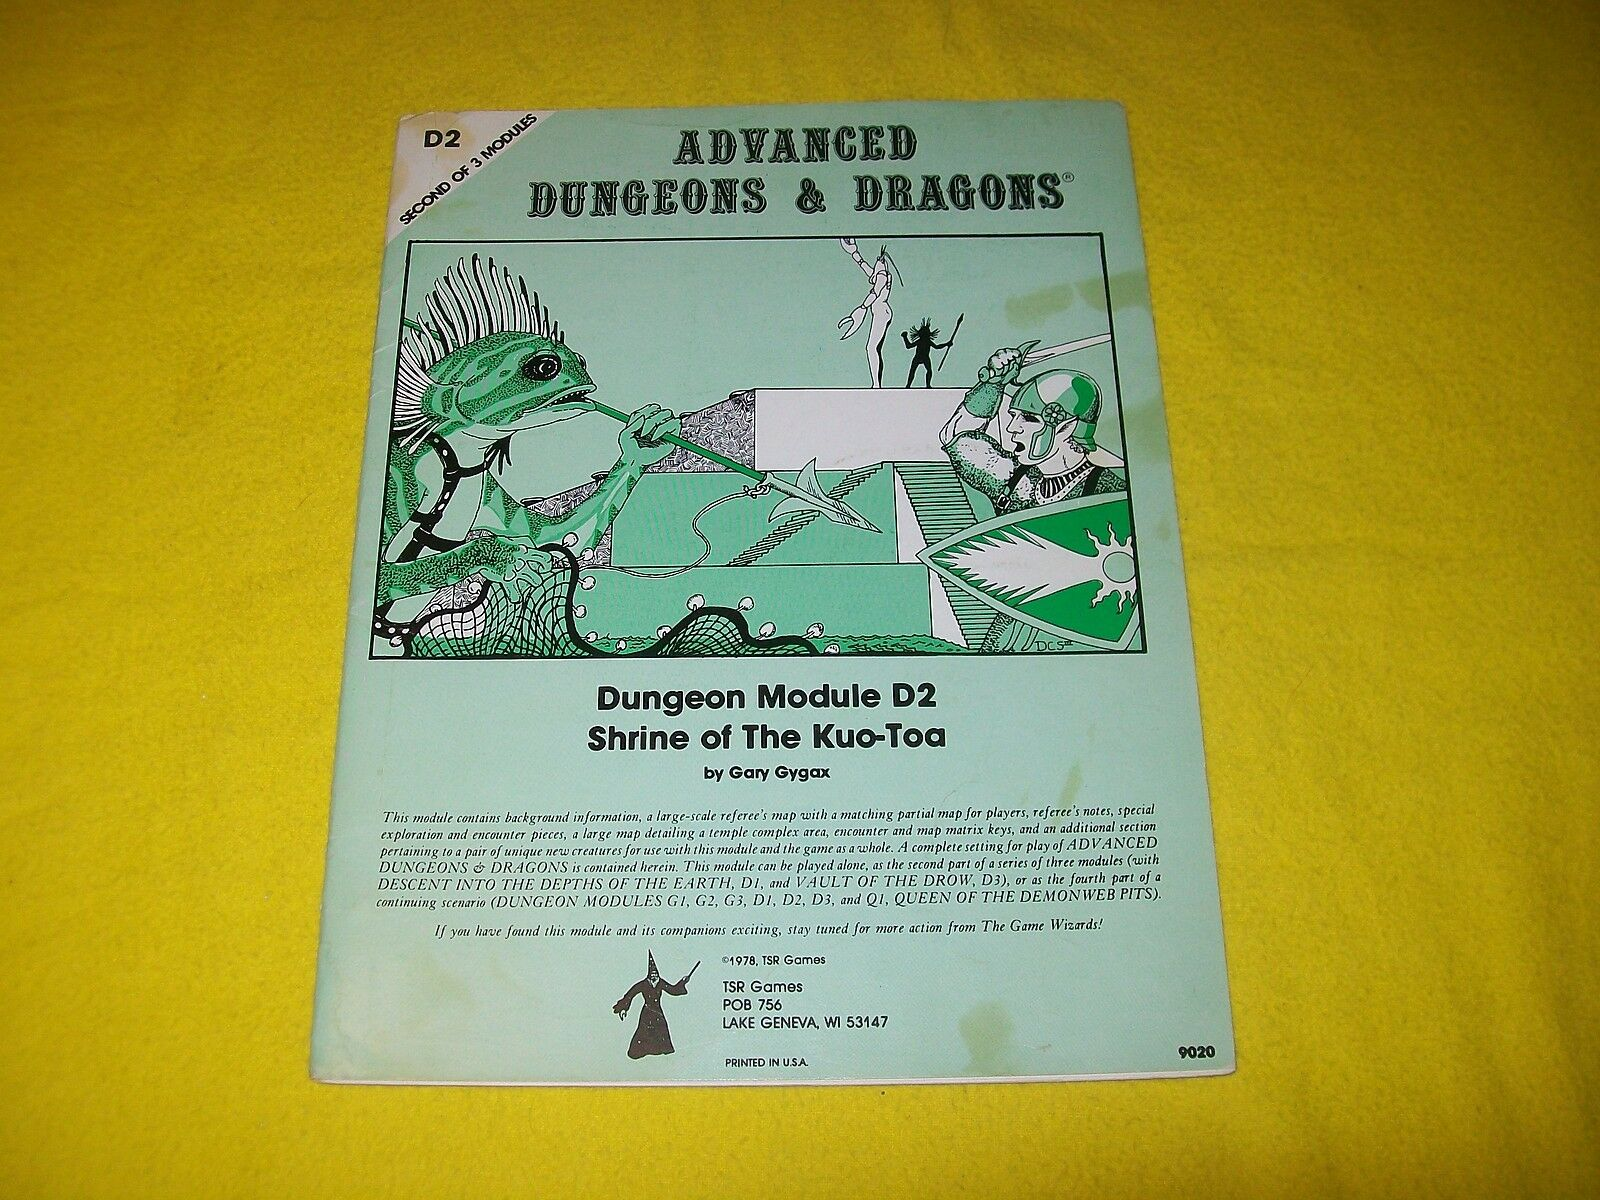 D2 SHRINE OF THE KUO-TOA DUNGEONS & DRAGONS TSR 9020 - 9 MONOCHROME 1ST PRINT